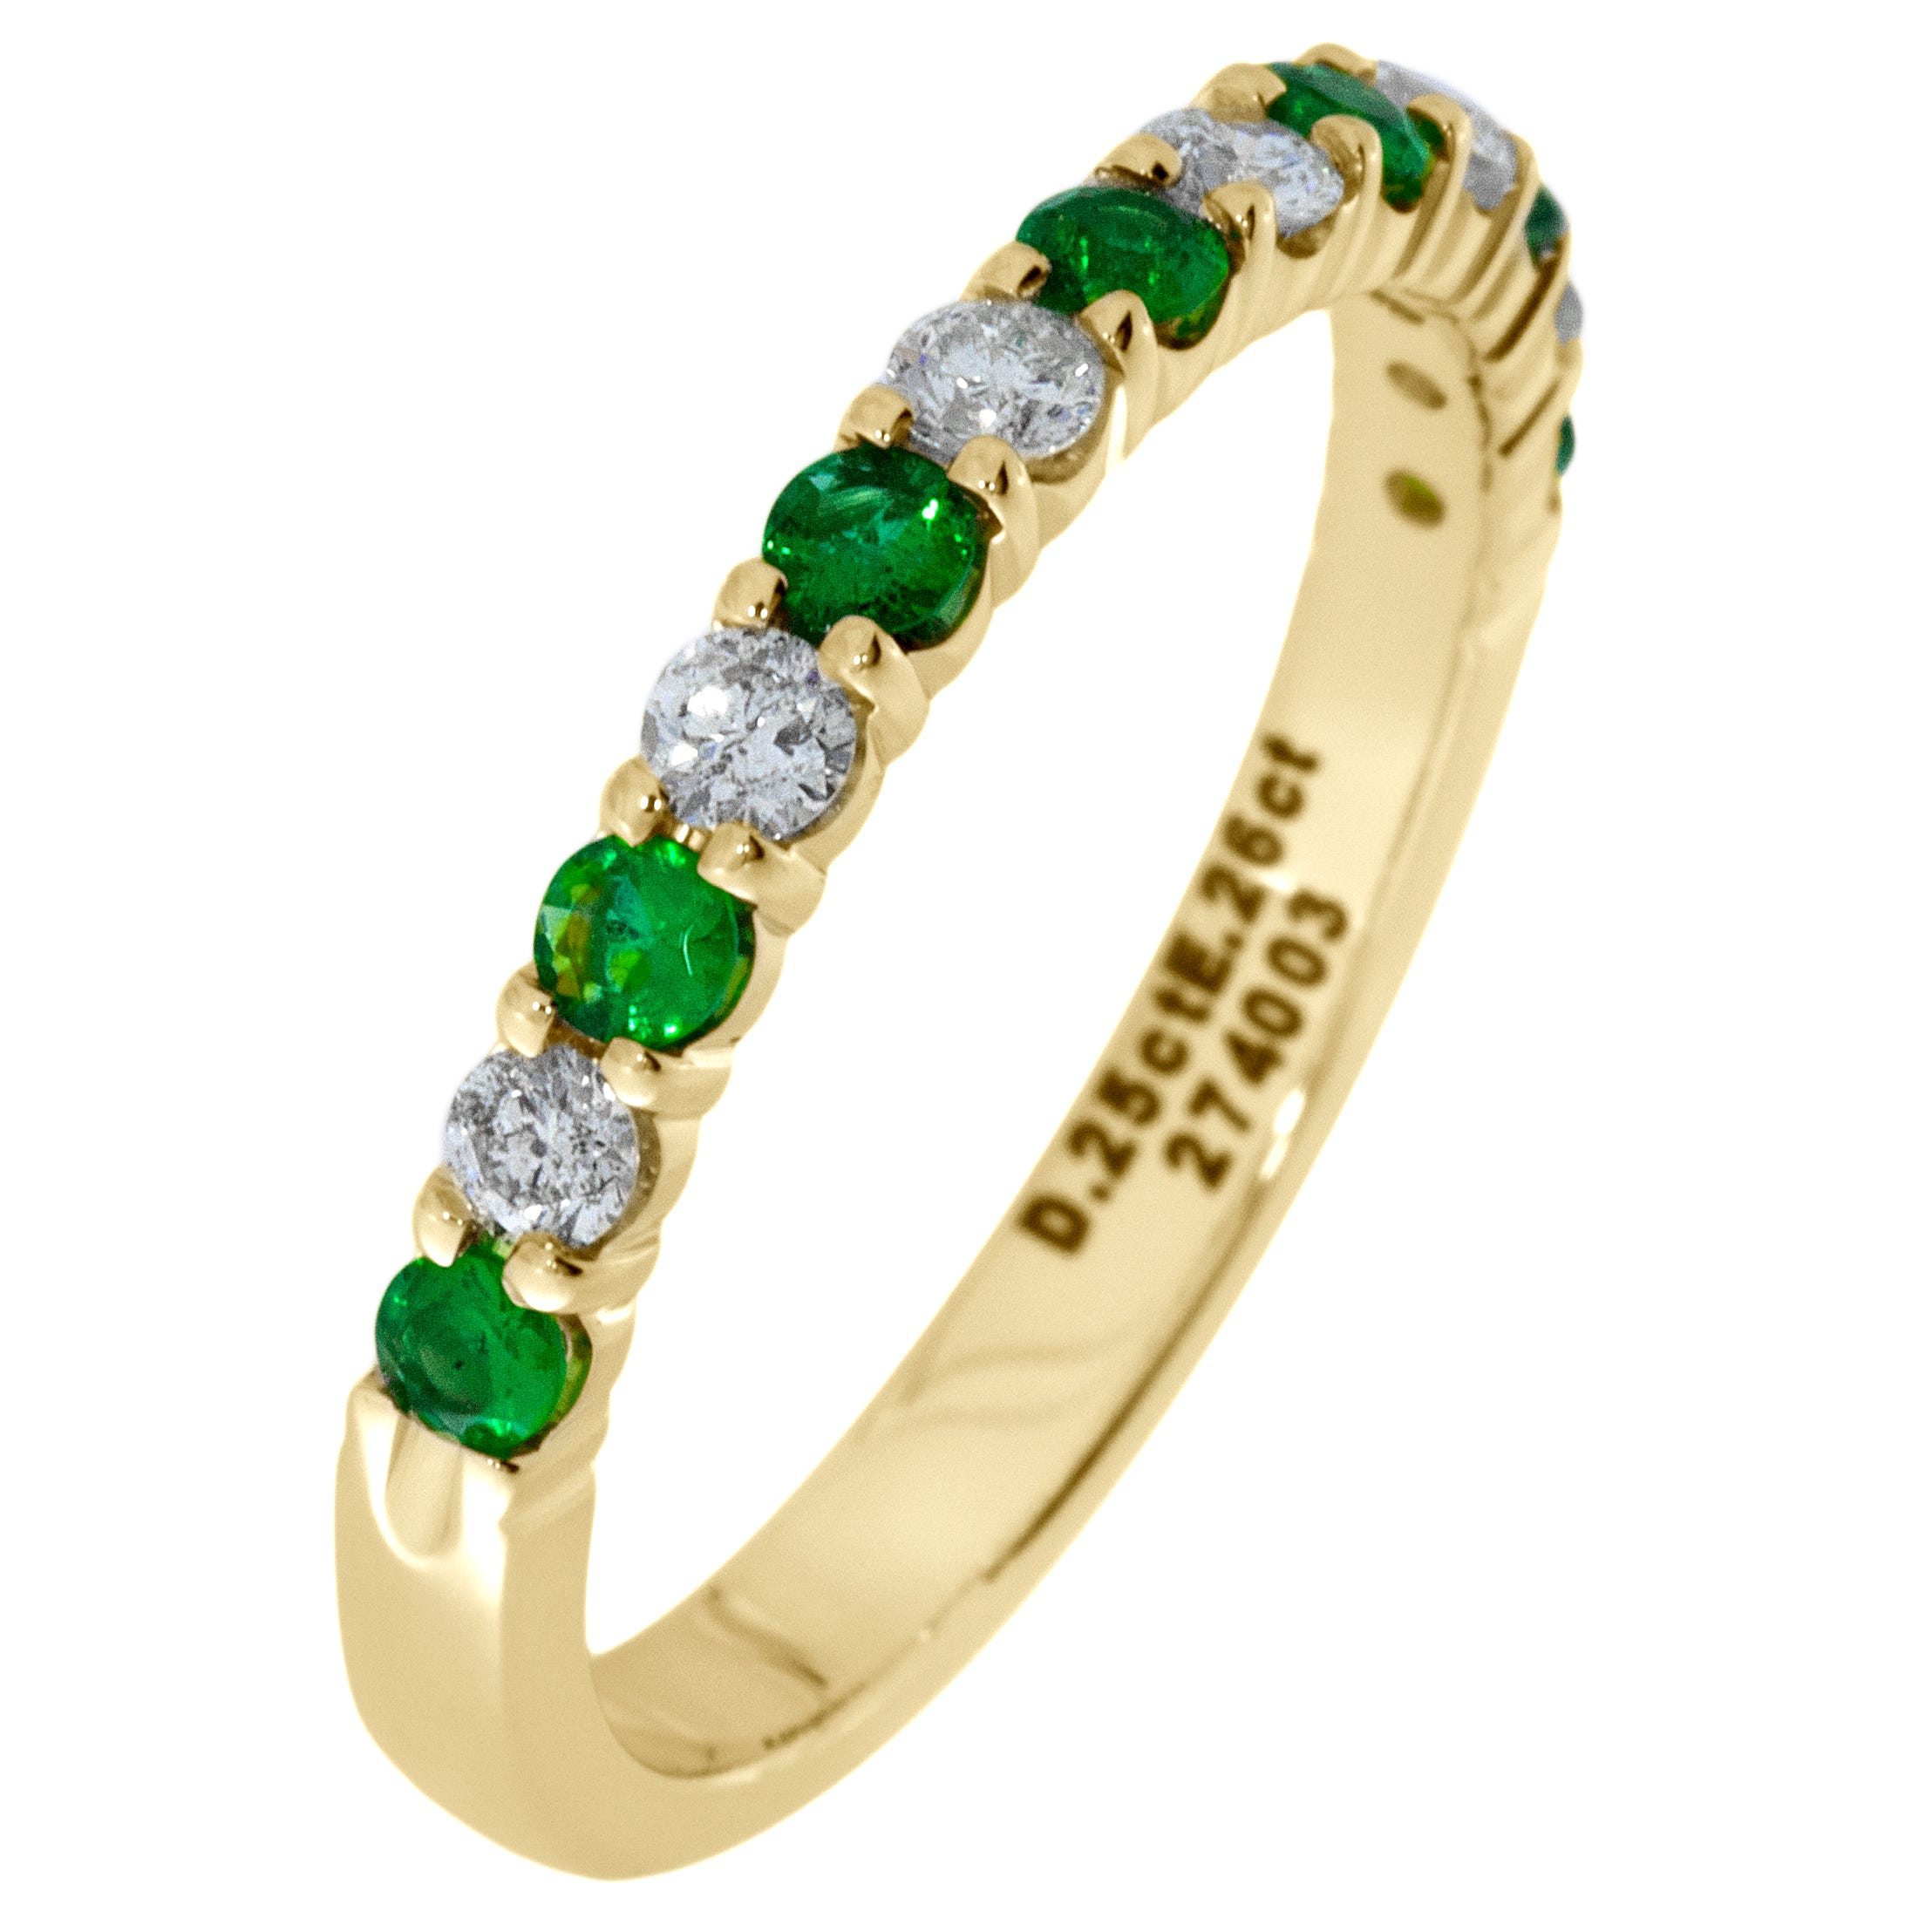 Diamond & Emerald Prong Set 1/4ctw. Band in 14k Yellow Gold